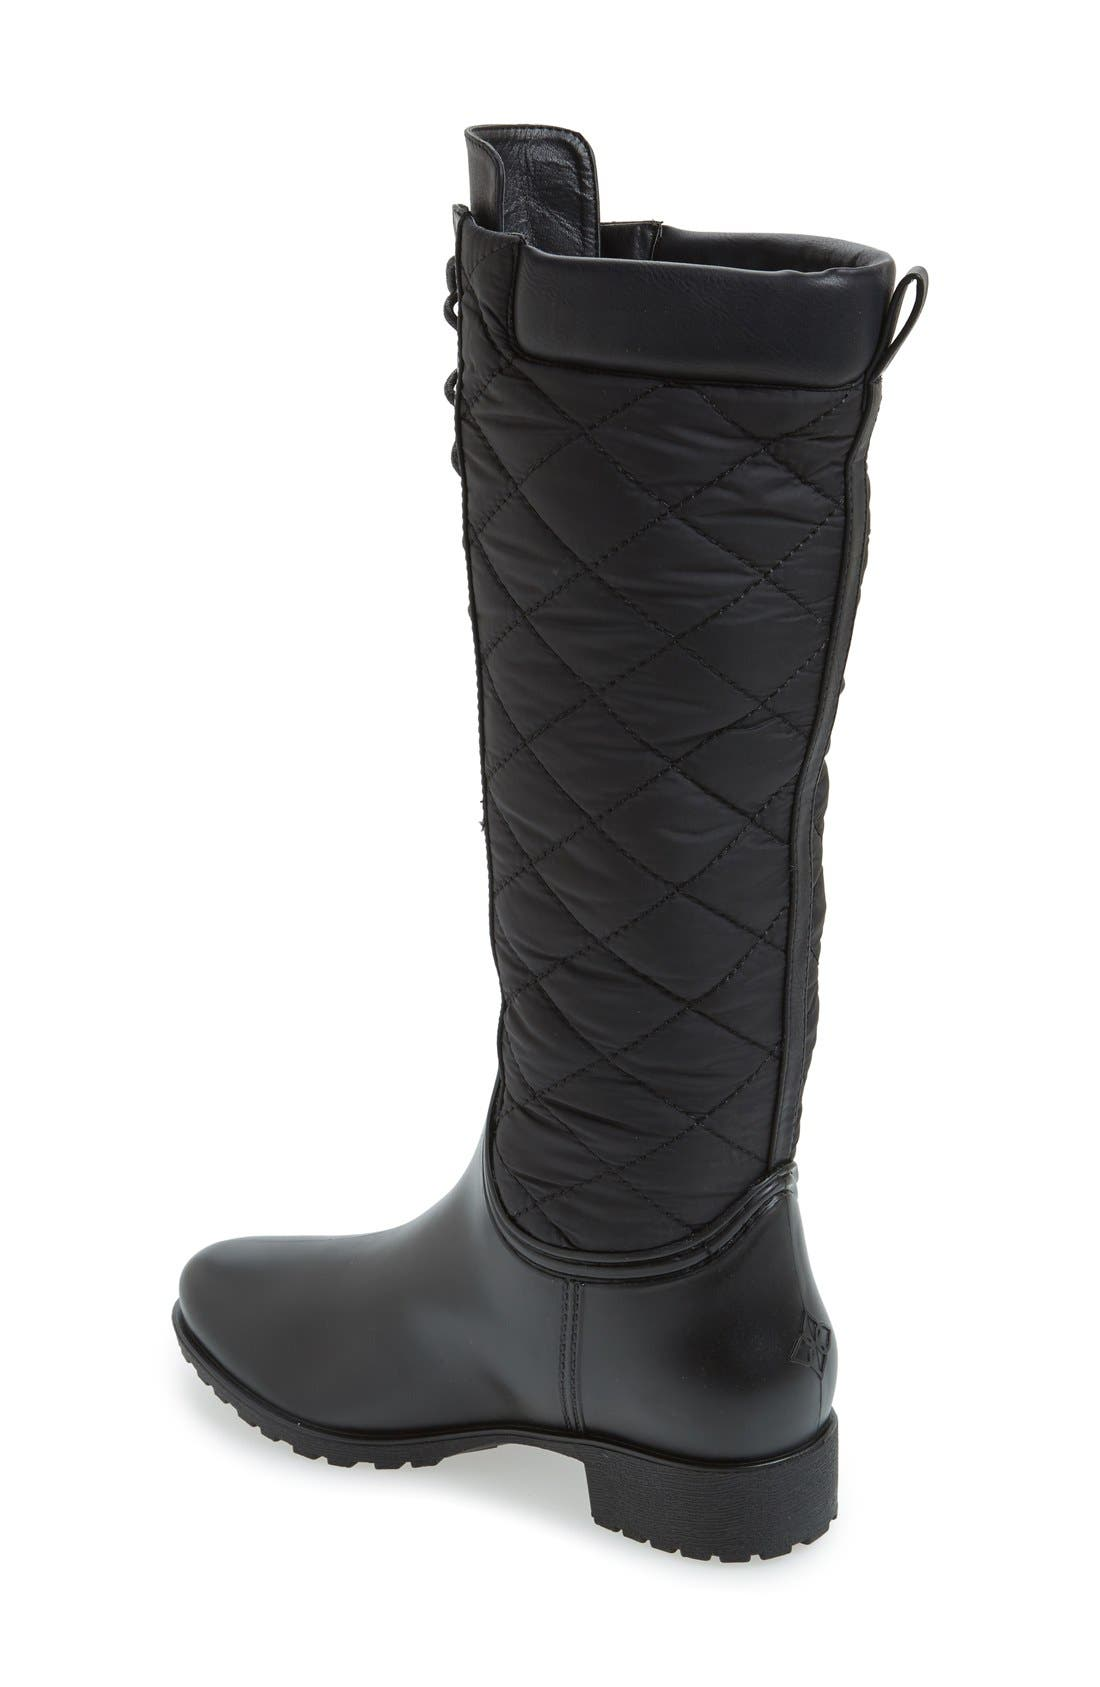 'Tofino' Quilted Tall Waterproof Rain Boot,                             Alternate thumbnail 2, color,                             Black